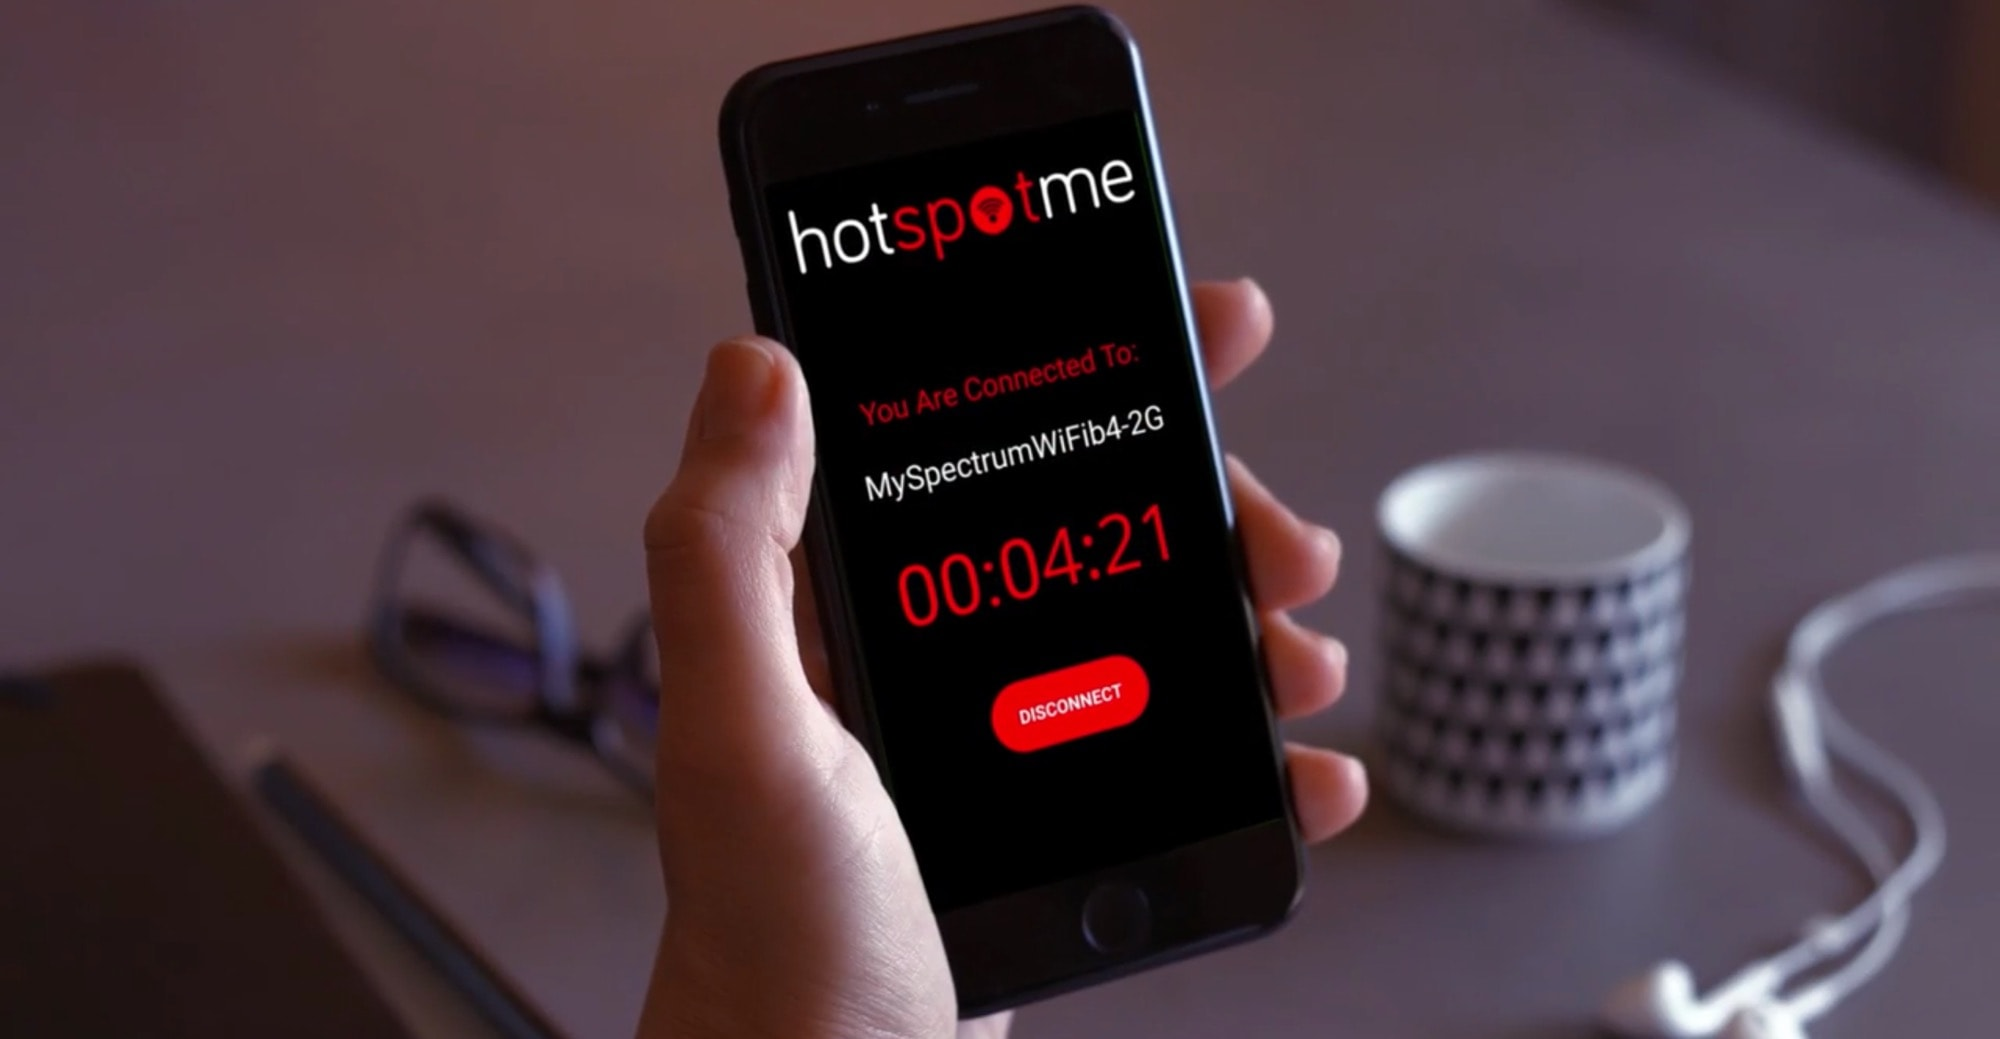 HotSpotMe lets you share your Wi-Fi hotspot with anyone.